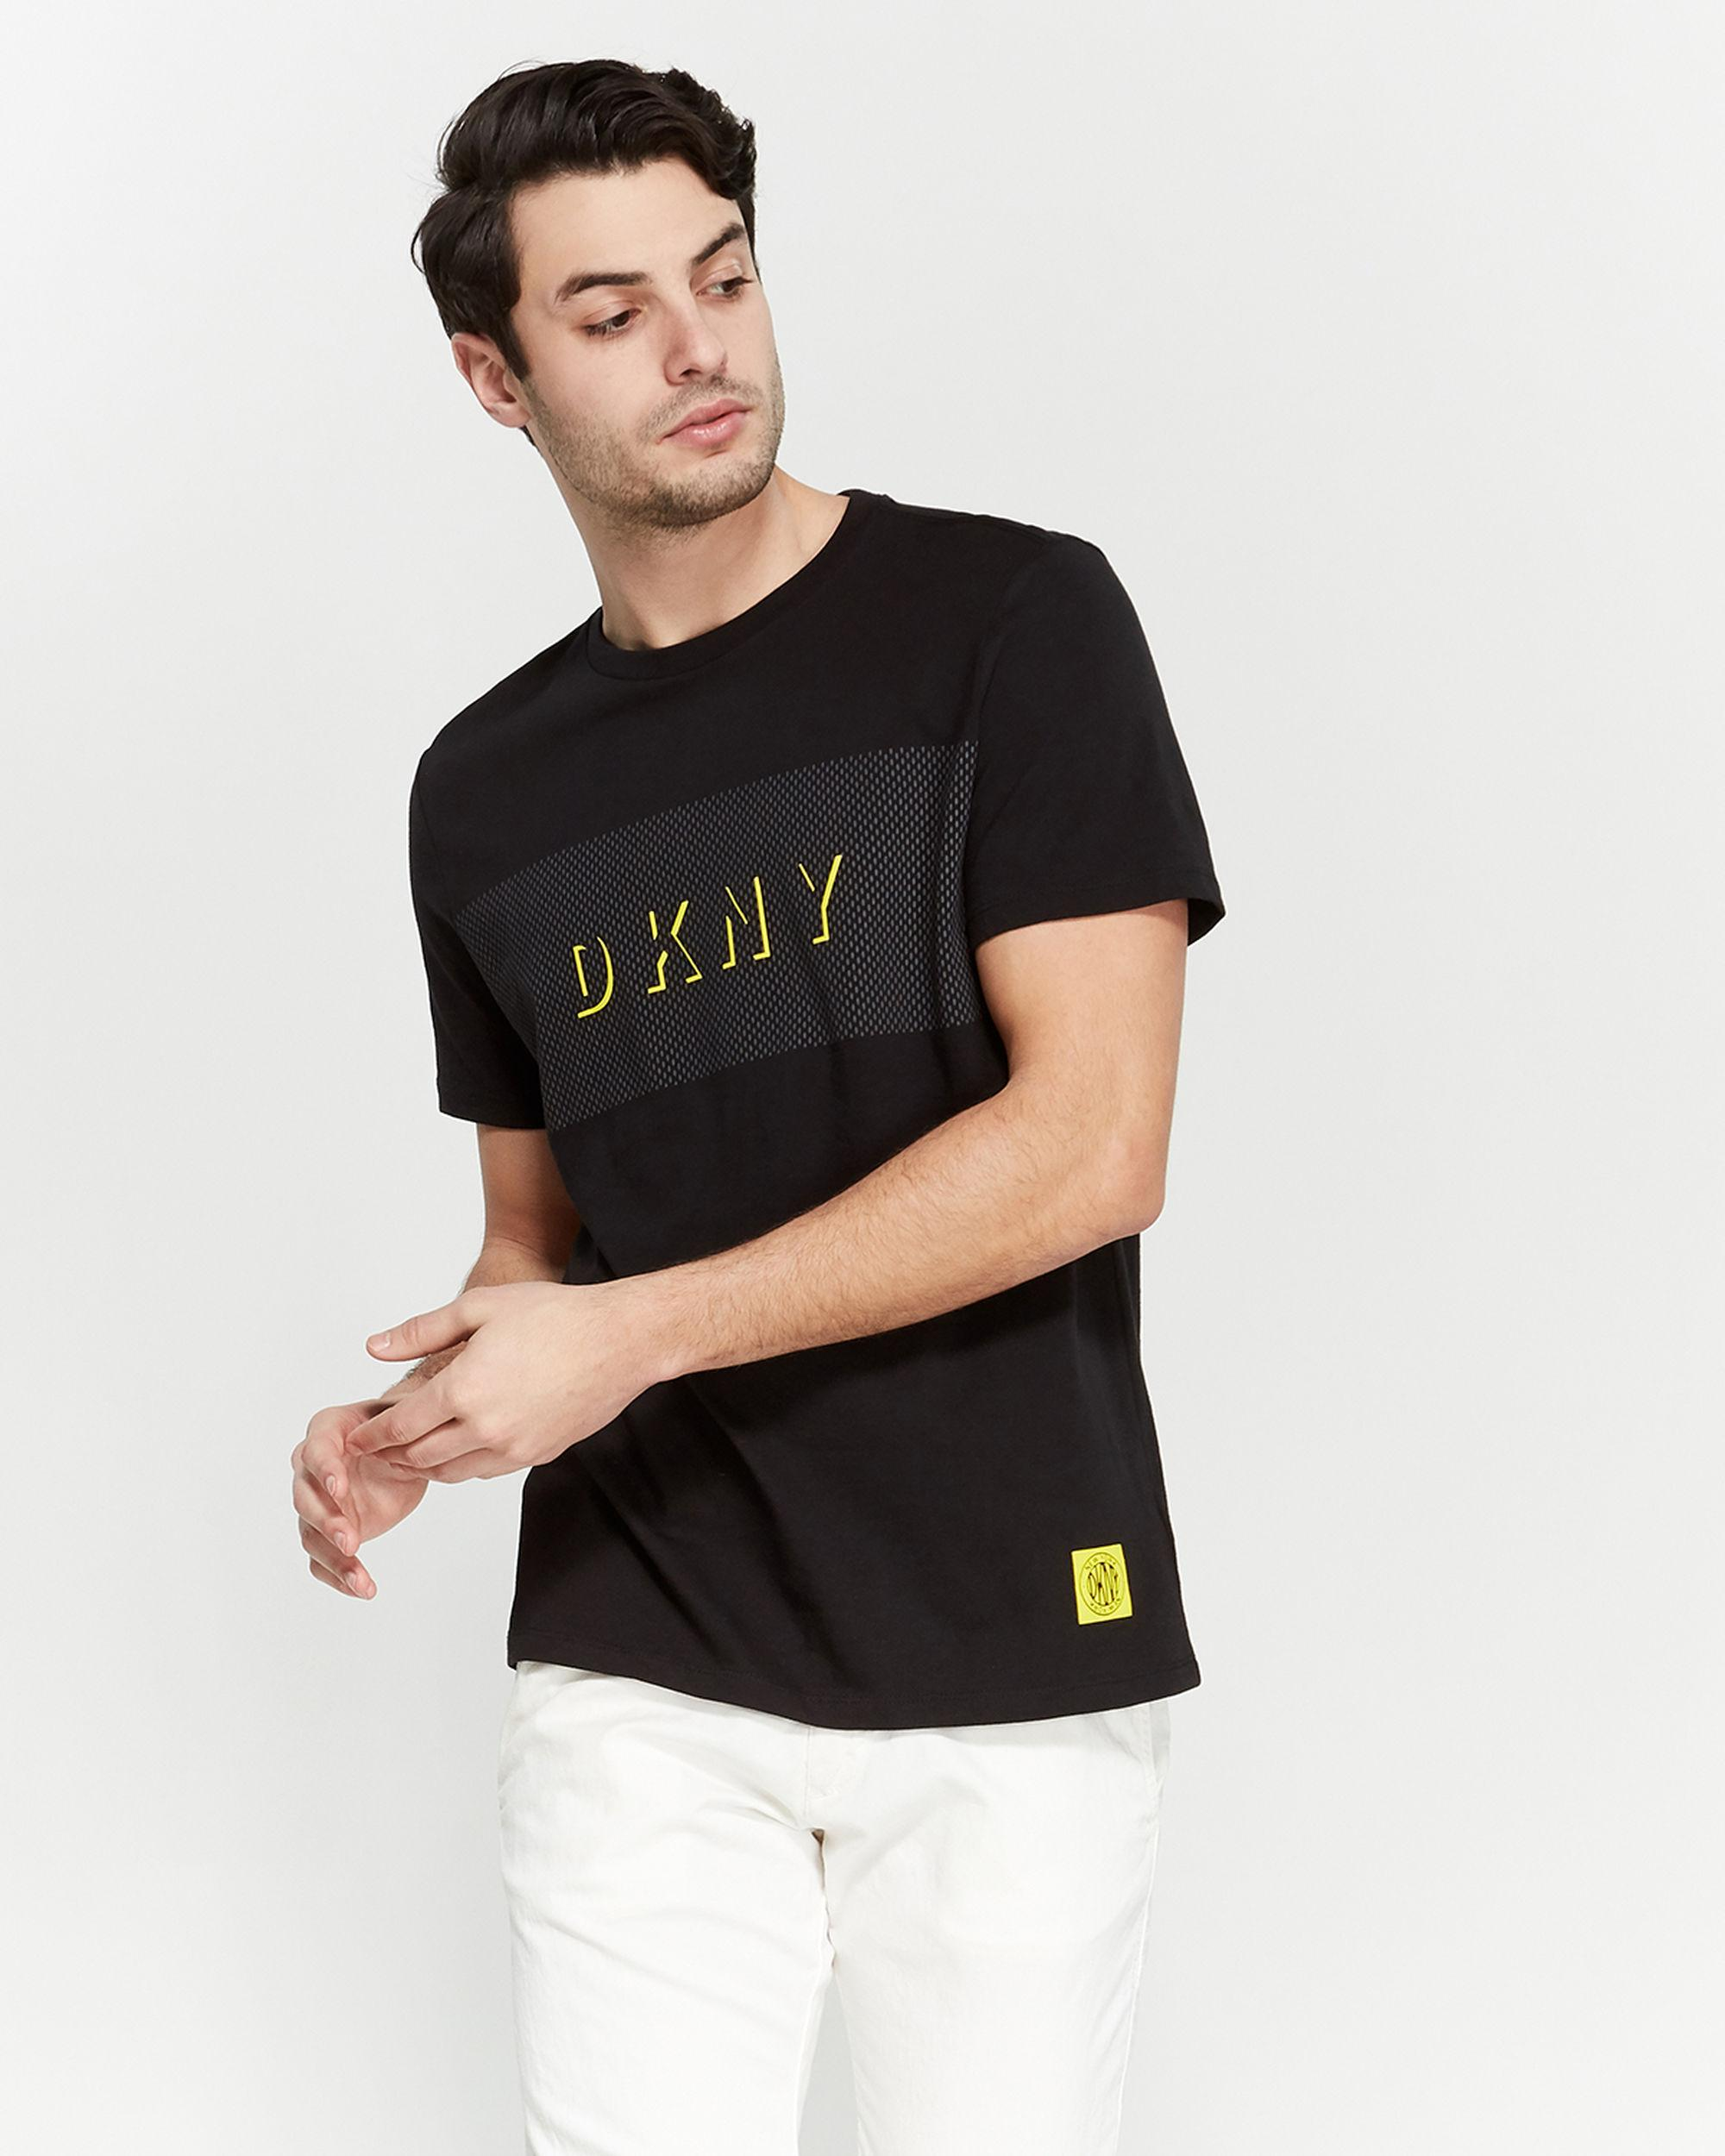 f8f3a7d9ee4c Lyst - DKNY Black Logo Graphic Short Sleeve Tee in Black for Men